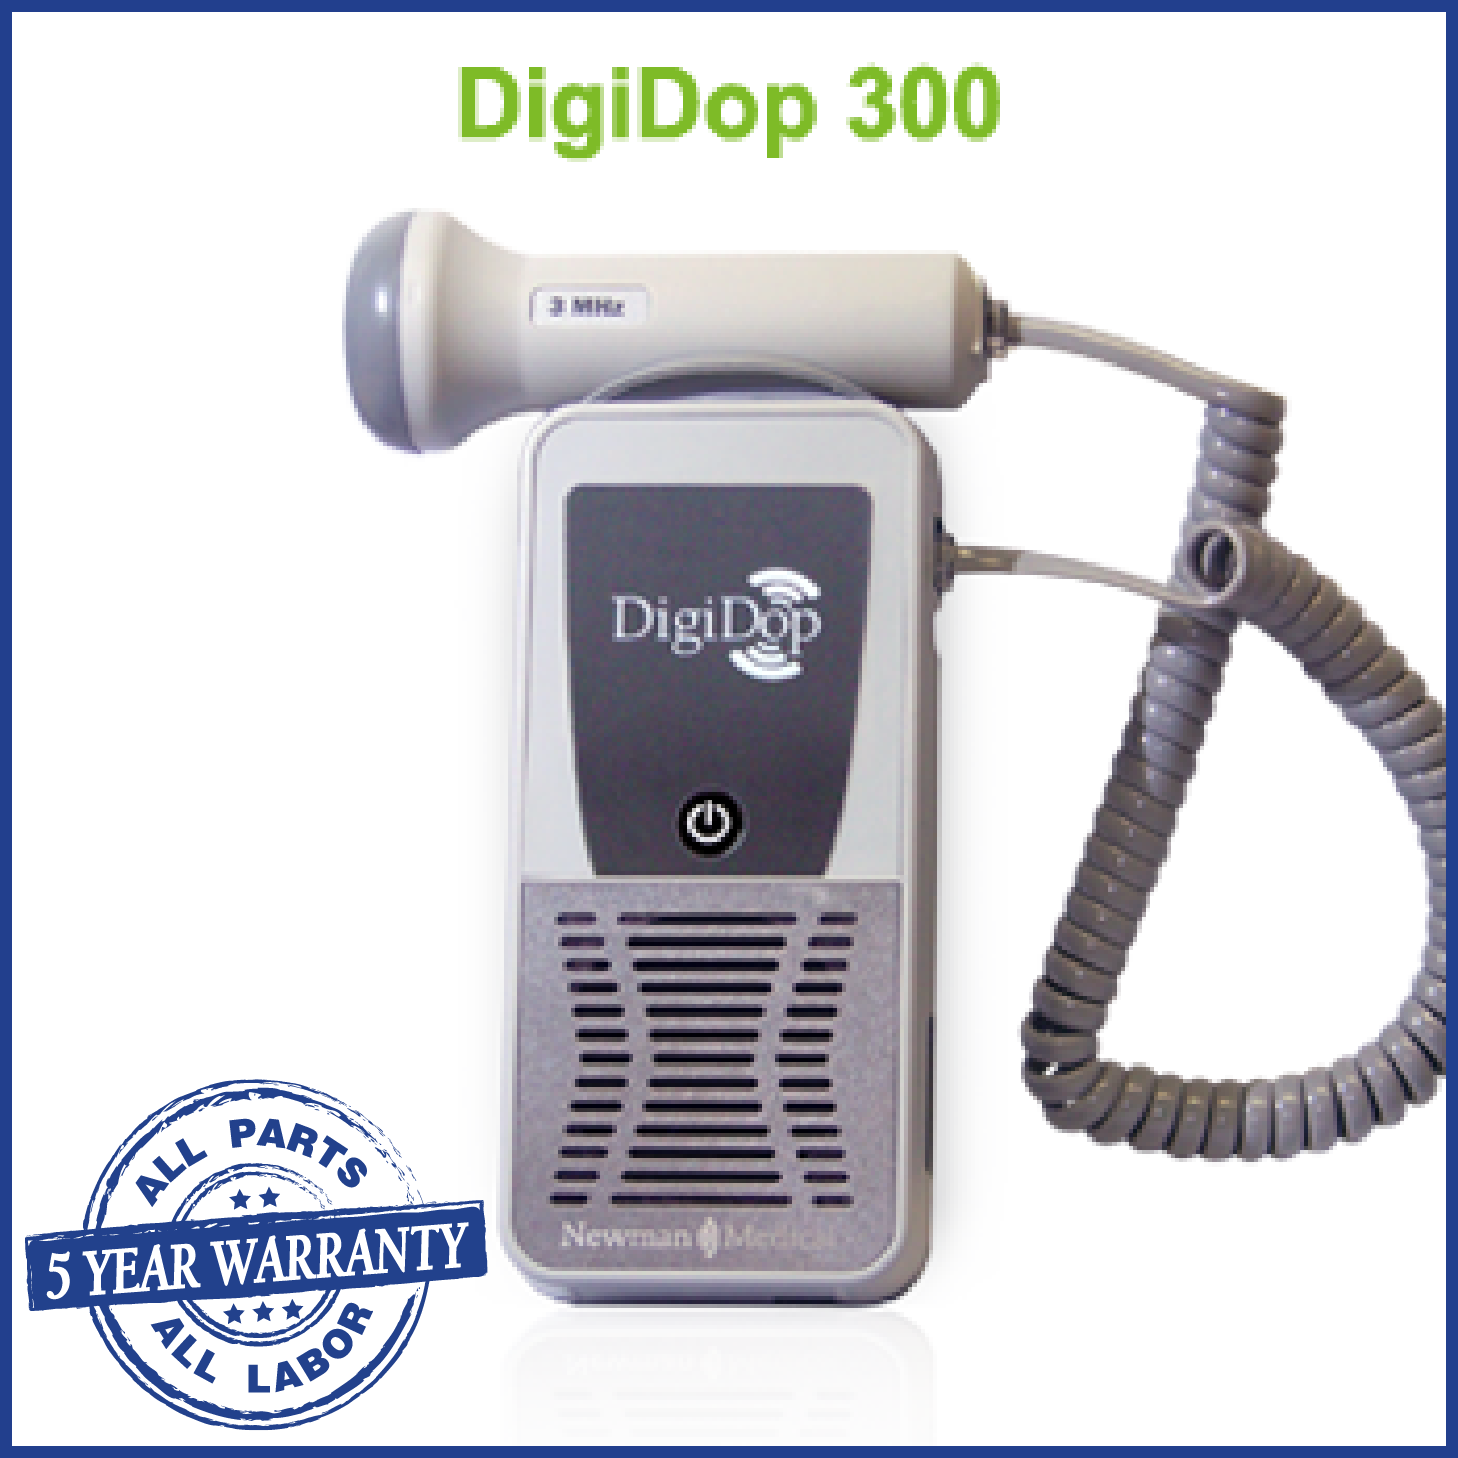 DD-300 Non-display non-rechargeable